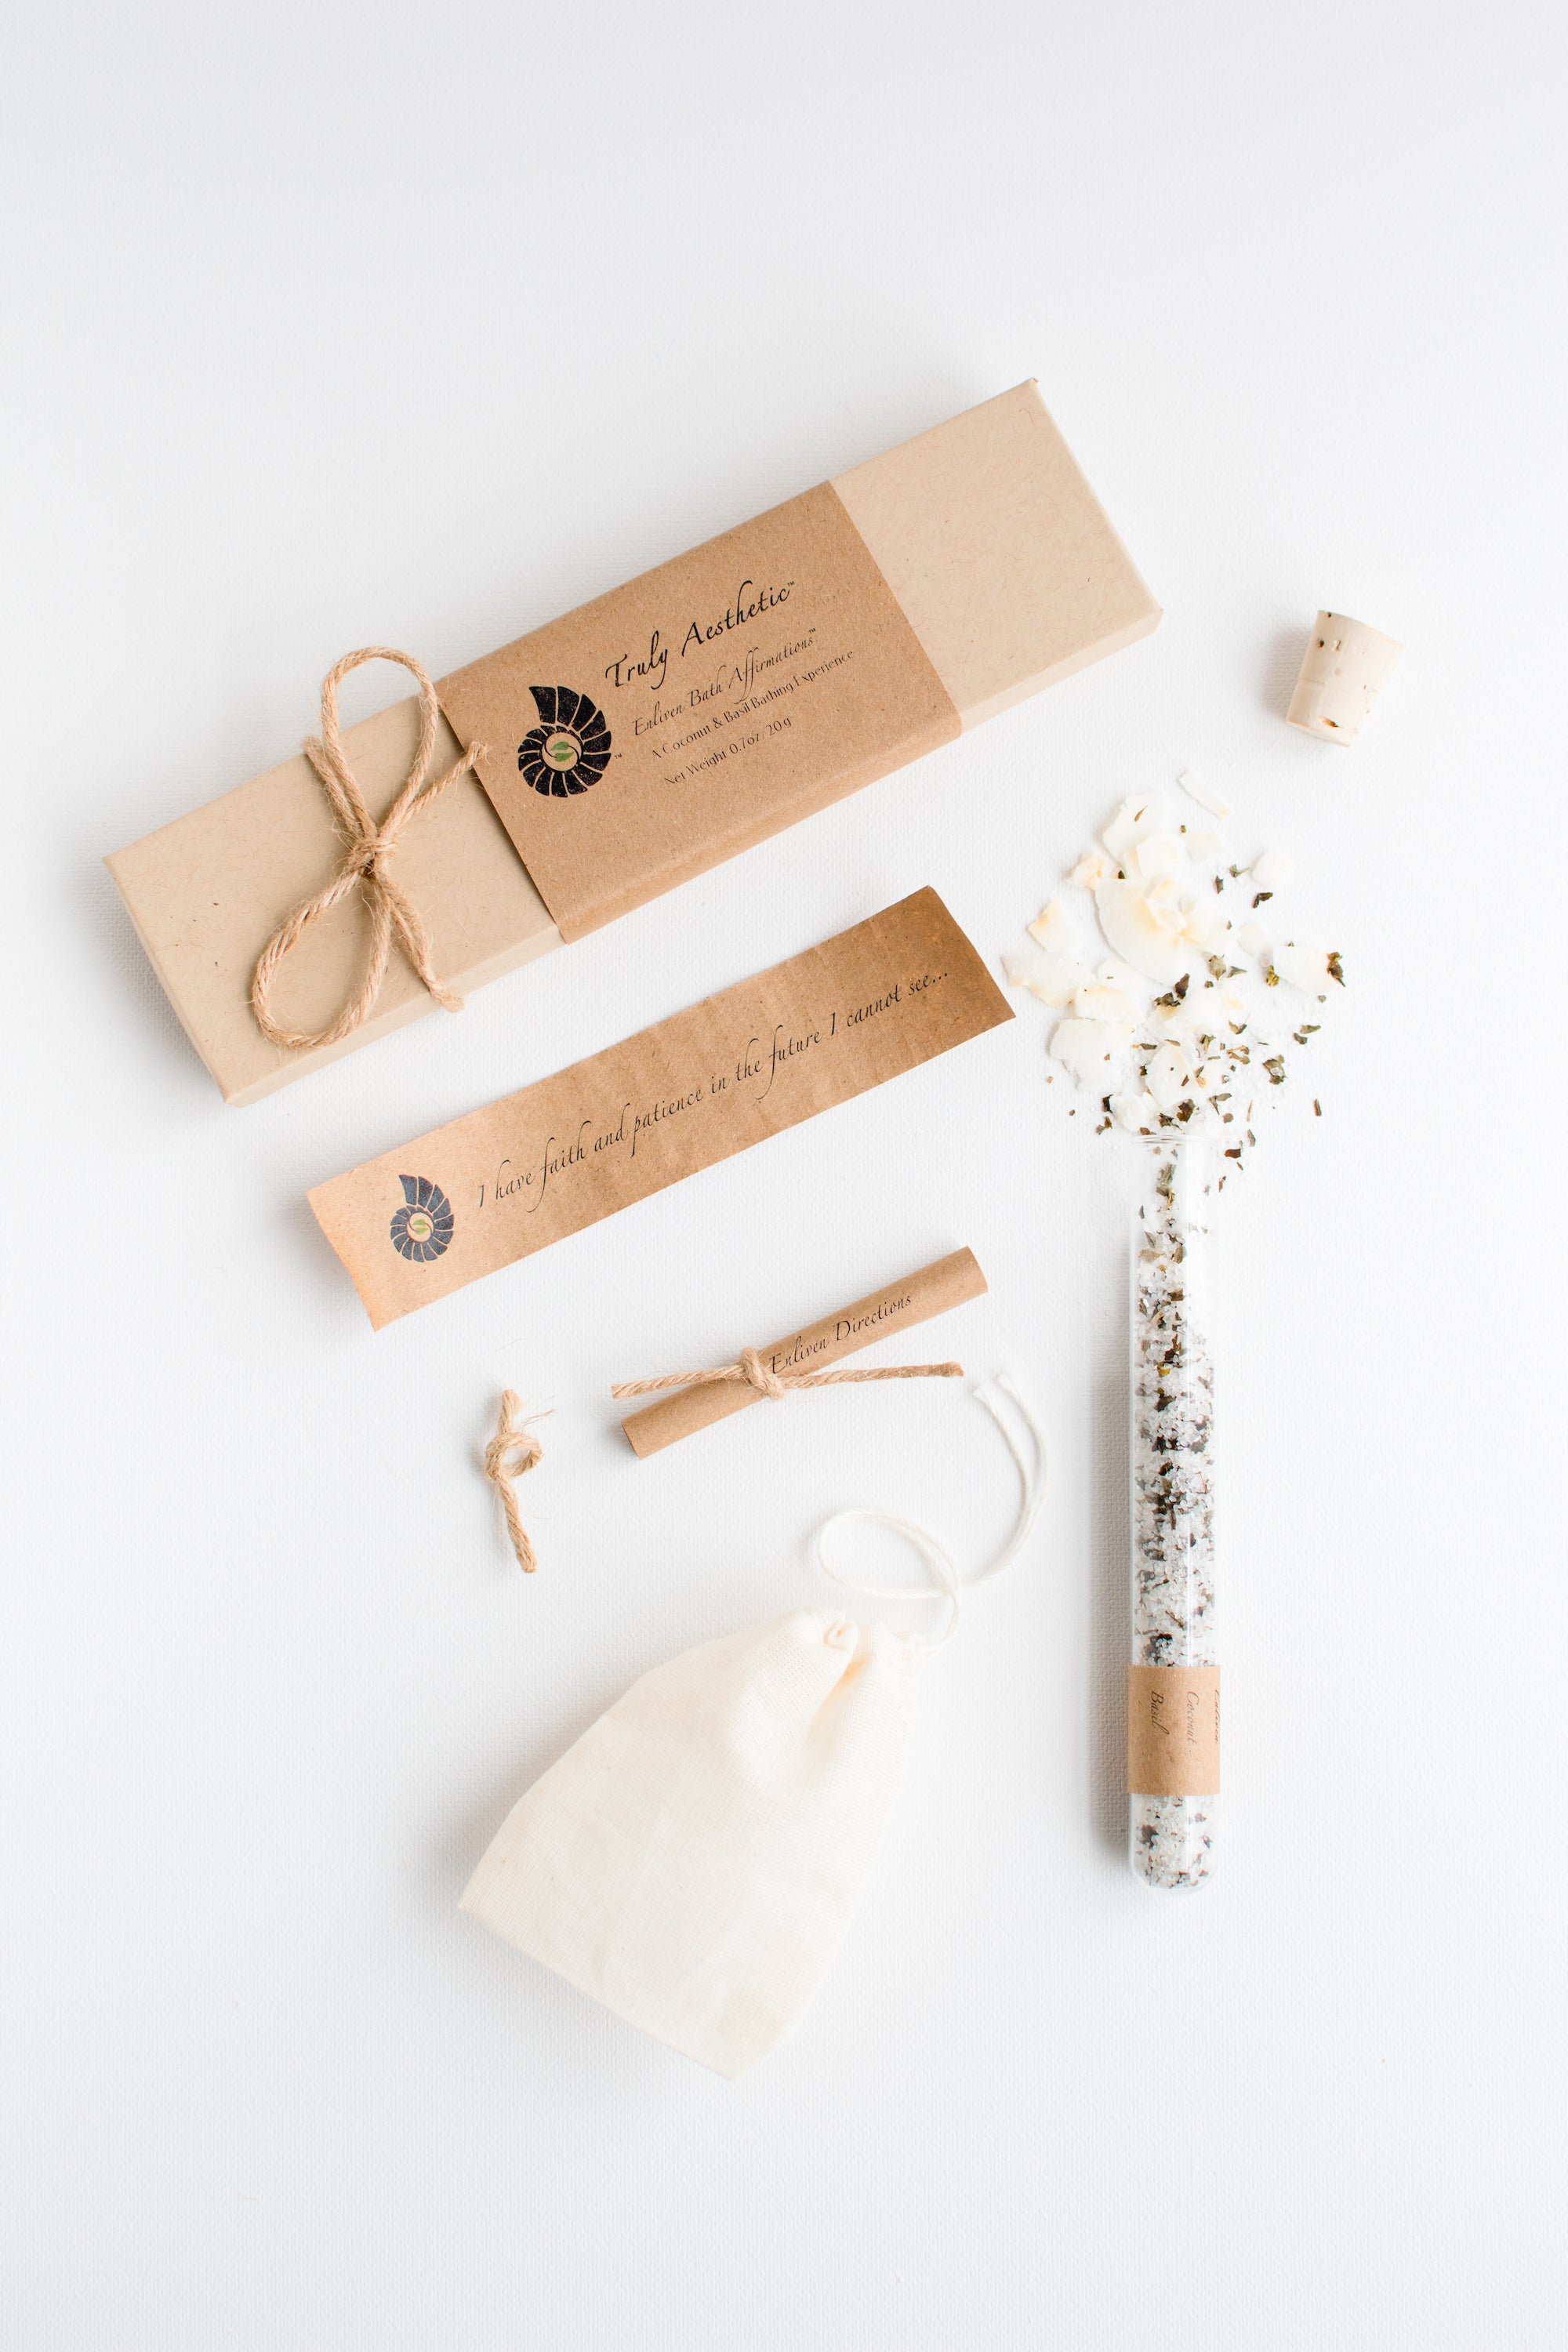 Truly Aesthetic Enliven Coconut Basil Petite Bath Affirmations Bath Salt Tube, Positive Affirmation and Gift Box Set Packaging